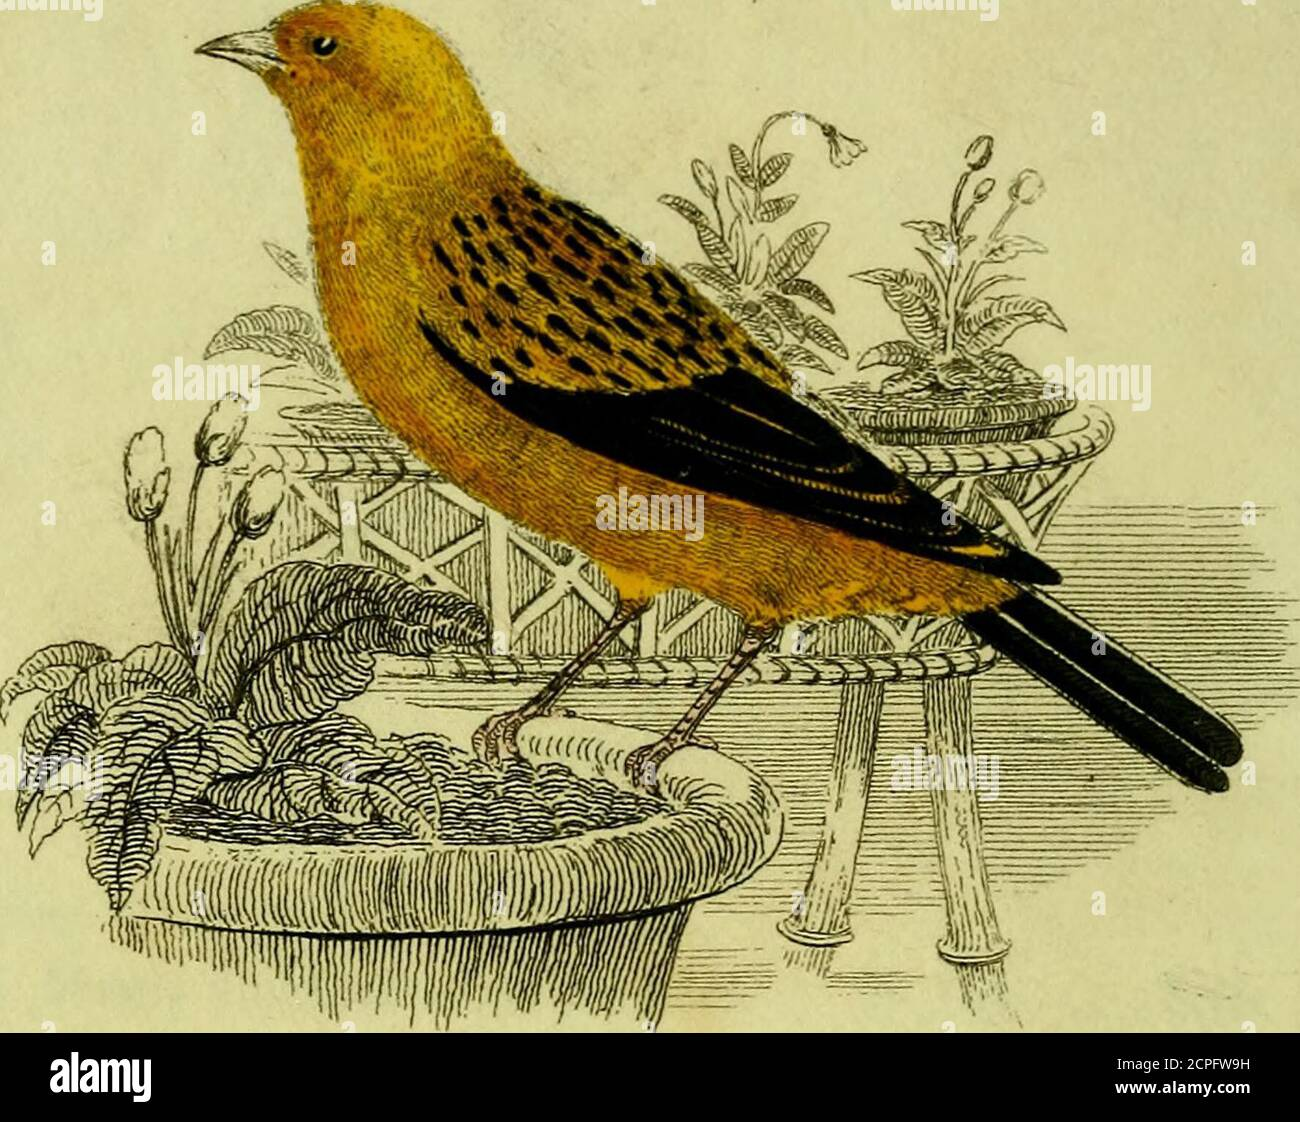 . A practical treatise on British song birds : in which is given every information relative to their natural history, incubation, &c. : together with the method of rearing and managing both old and young birds / . llowing treatise,as showing either elegance of thought, orpurity of diction, but merely as the resultof many years experience, which, from timeto time, I have put together at my leisuremoments. JOSEPH NASH. 39, Great Windmill Street,Haymarket. 3Iayl, 1824. TABLE OF CONTENTS. The Canary page 1 The Goldfinch 30 The Bullfinch 34 The Linnet 38 The Aberdevine 43 The Redpole 45 The Blackbi Stock Photo